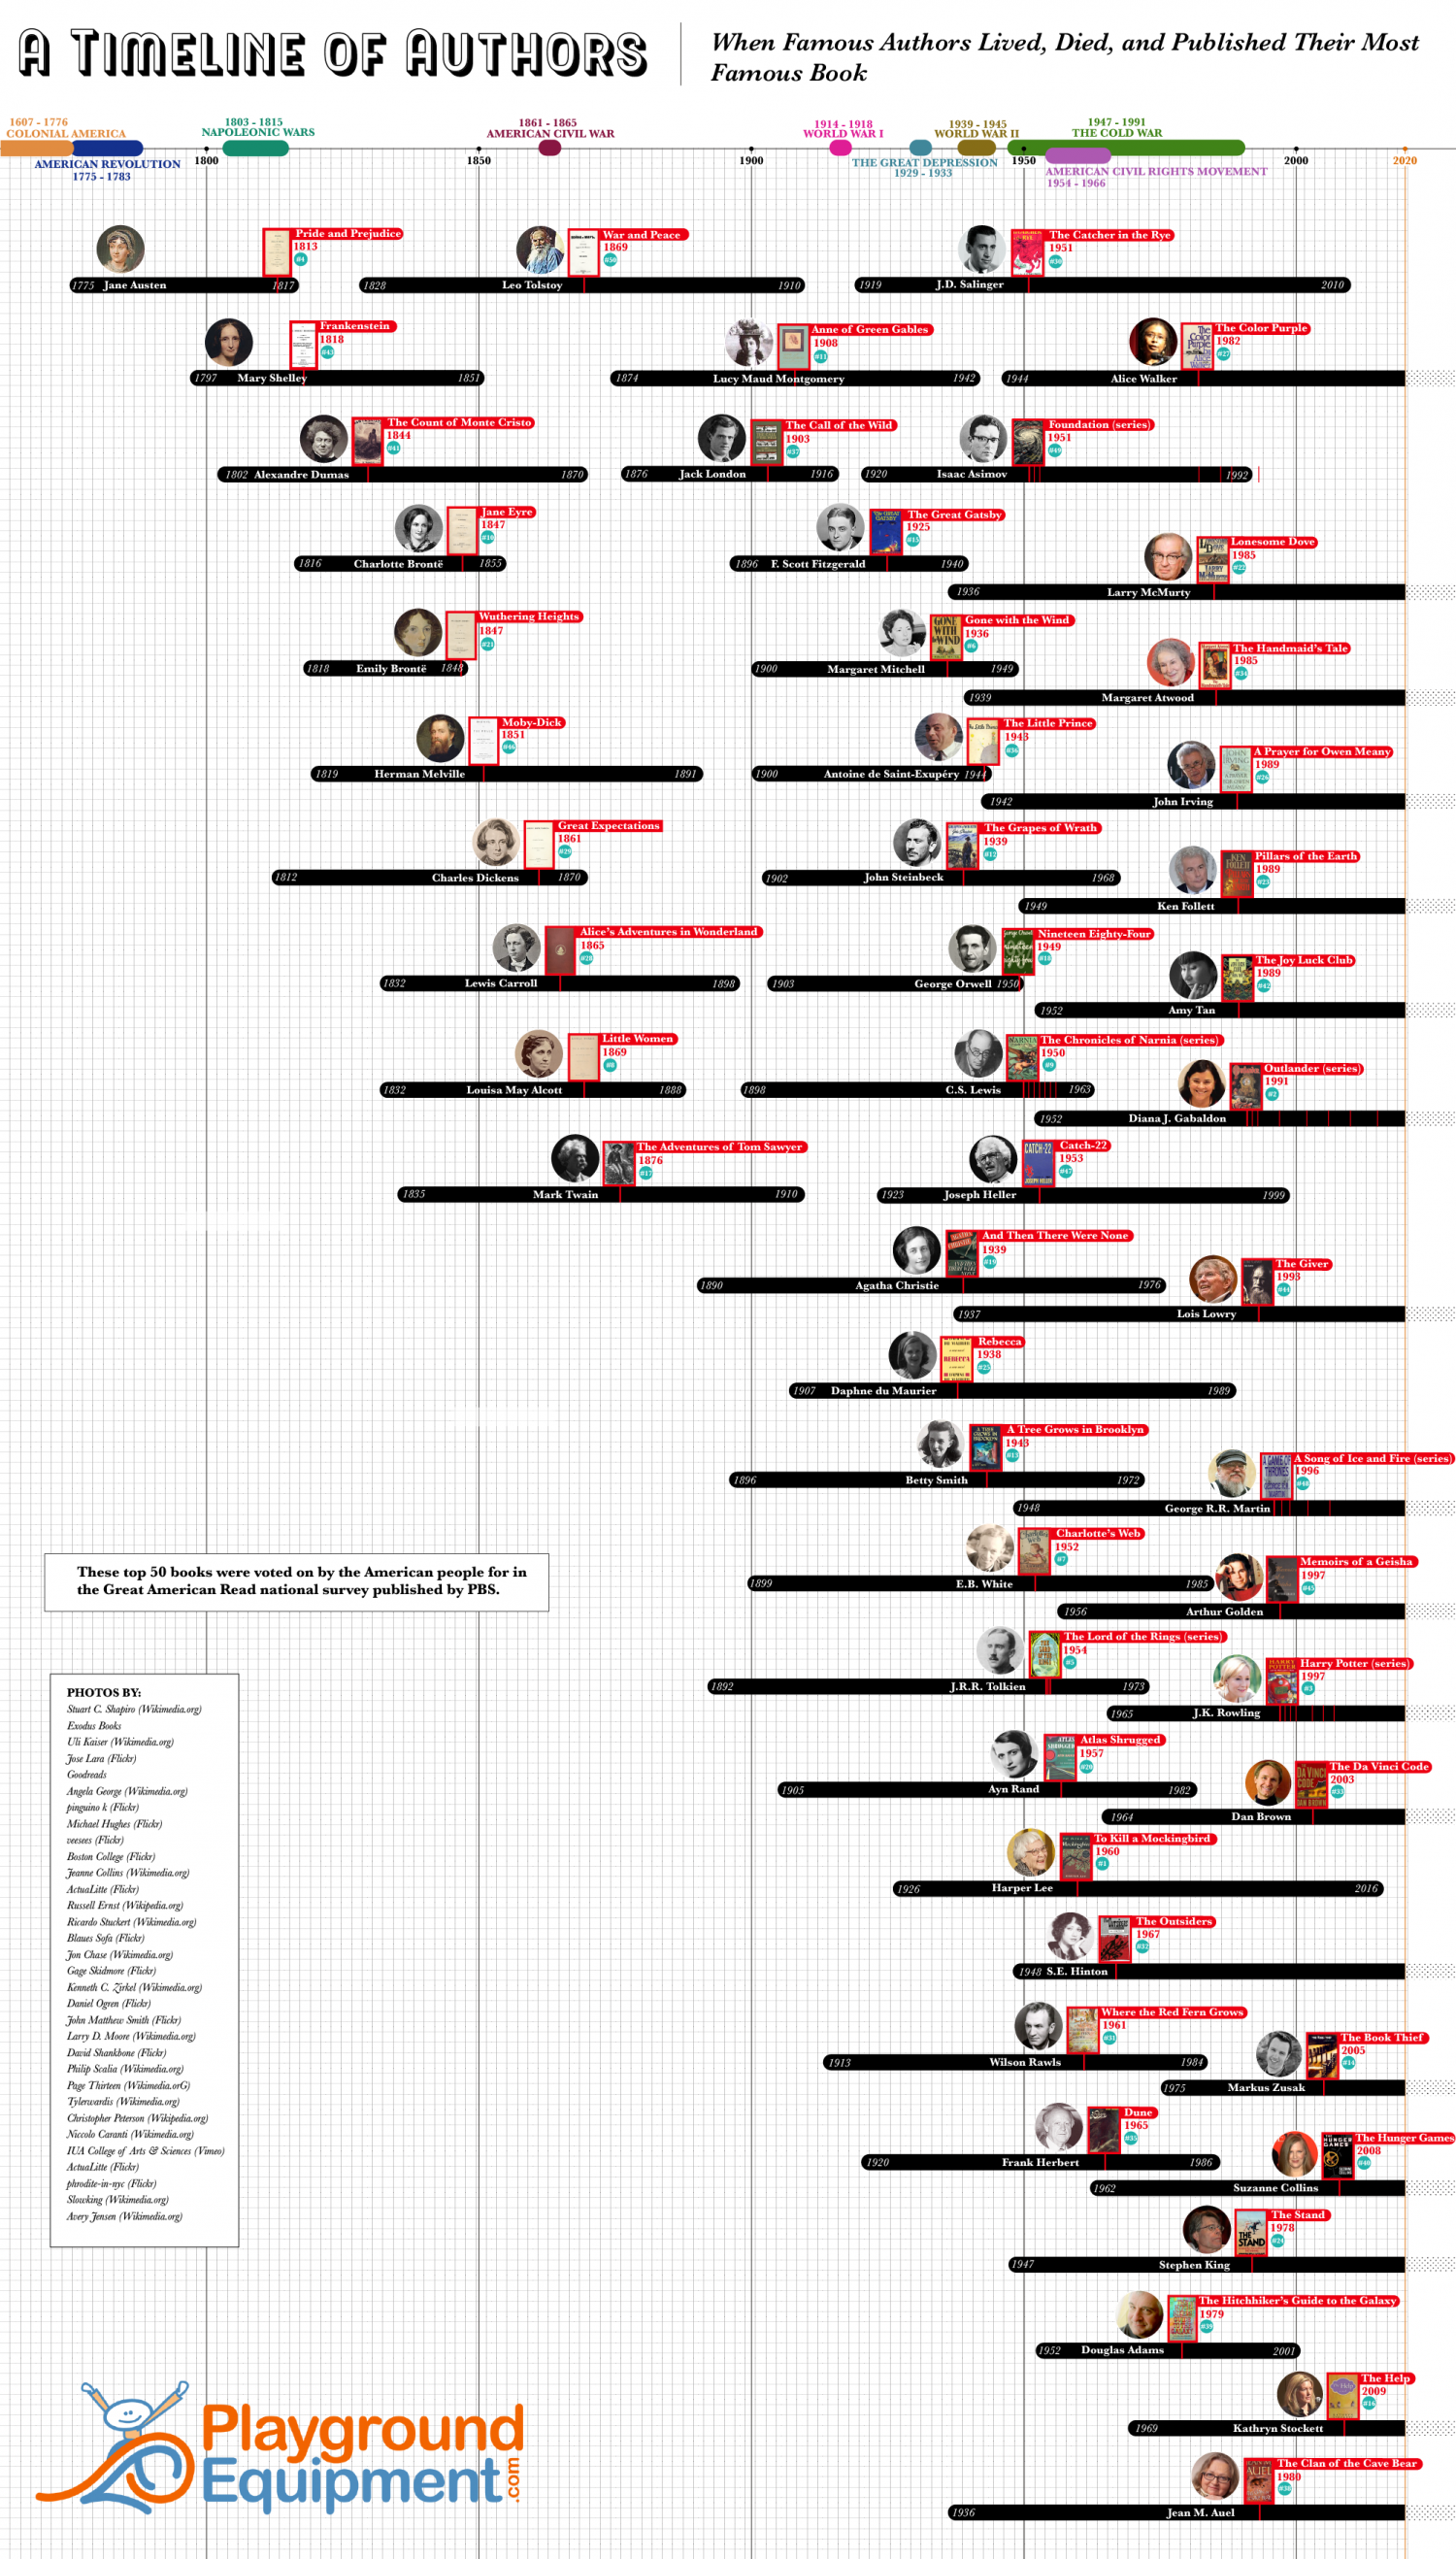 A Timeline of Authors Infographic